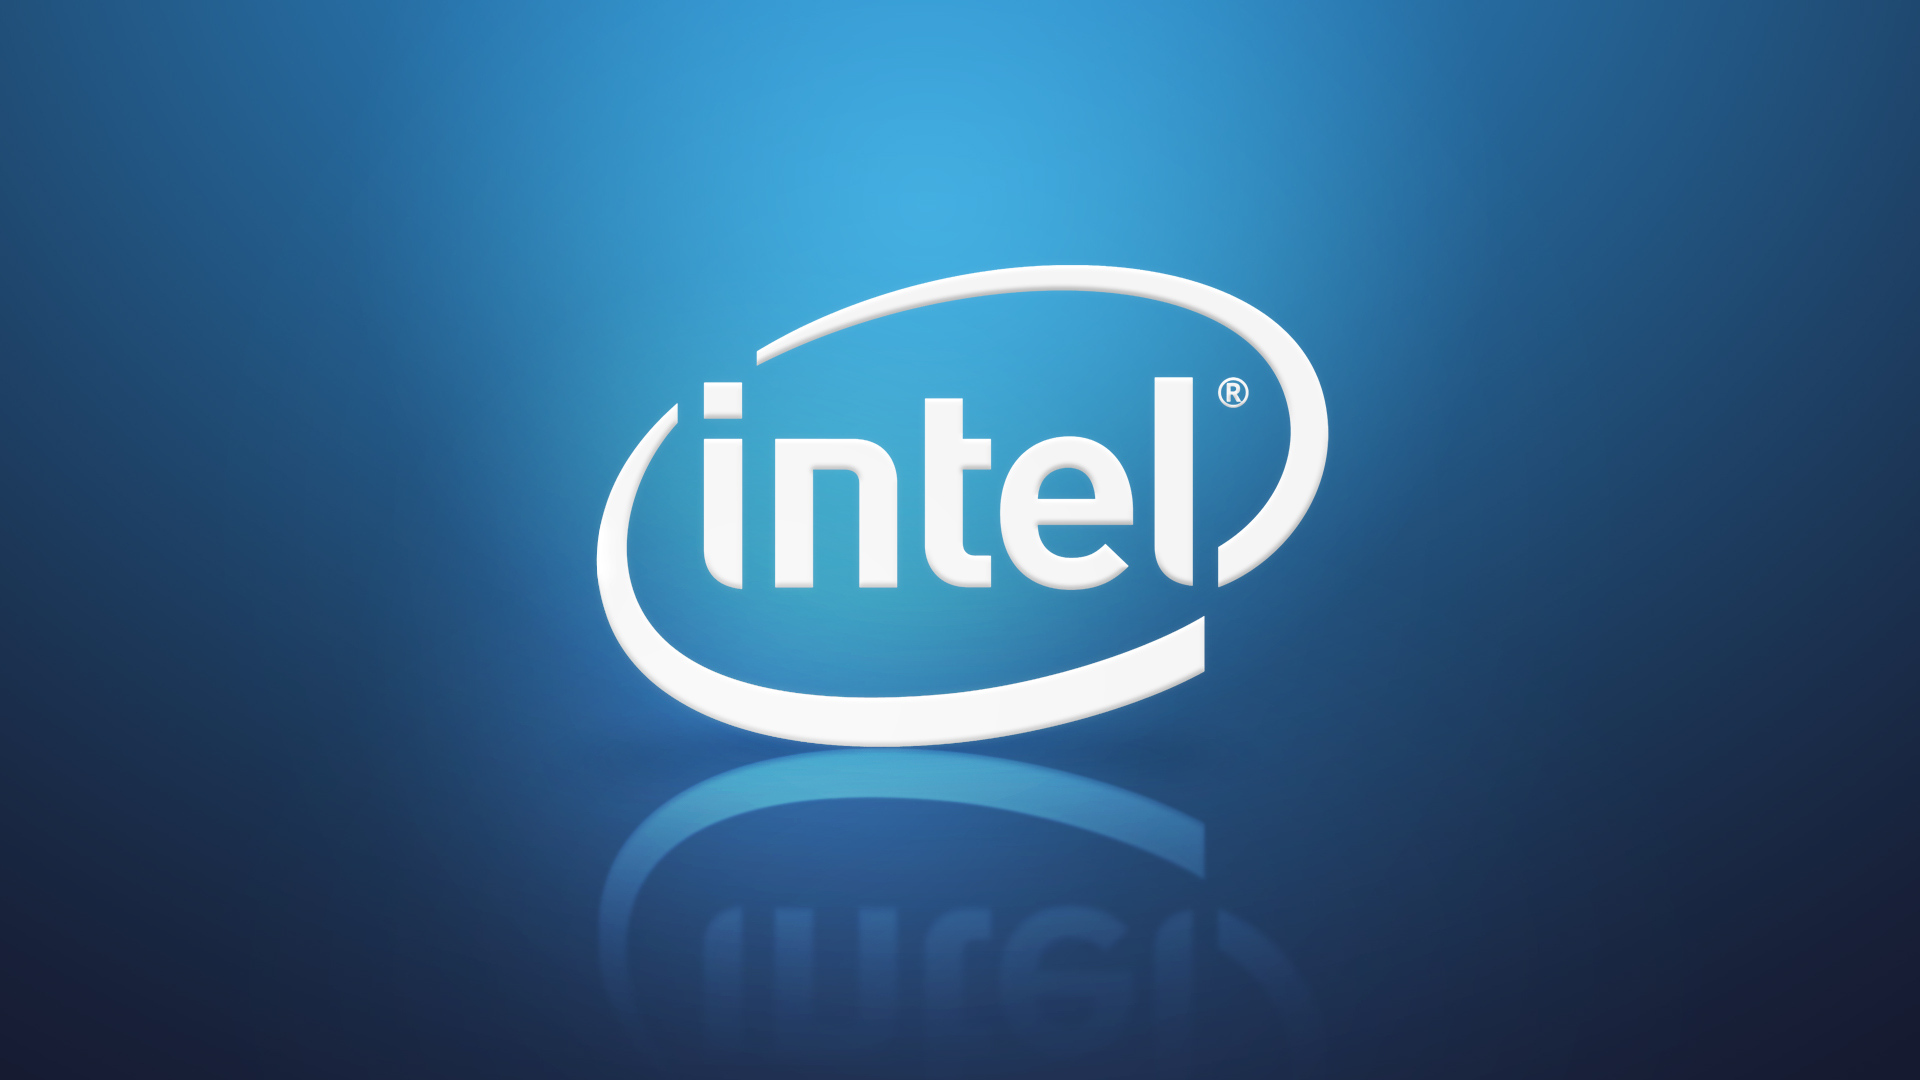 intel wallpaper by dlza customization wallpaper hdtv widescreen 2010 1920x1080